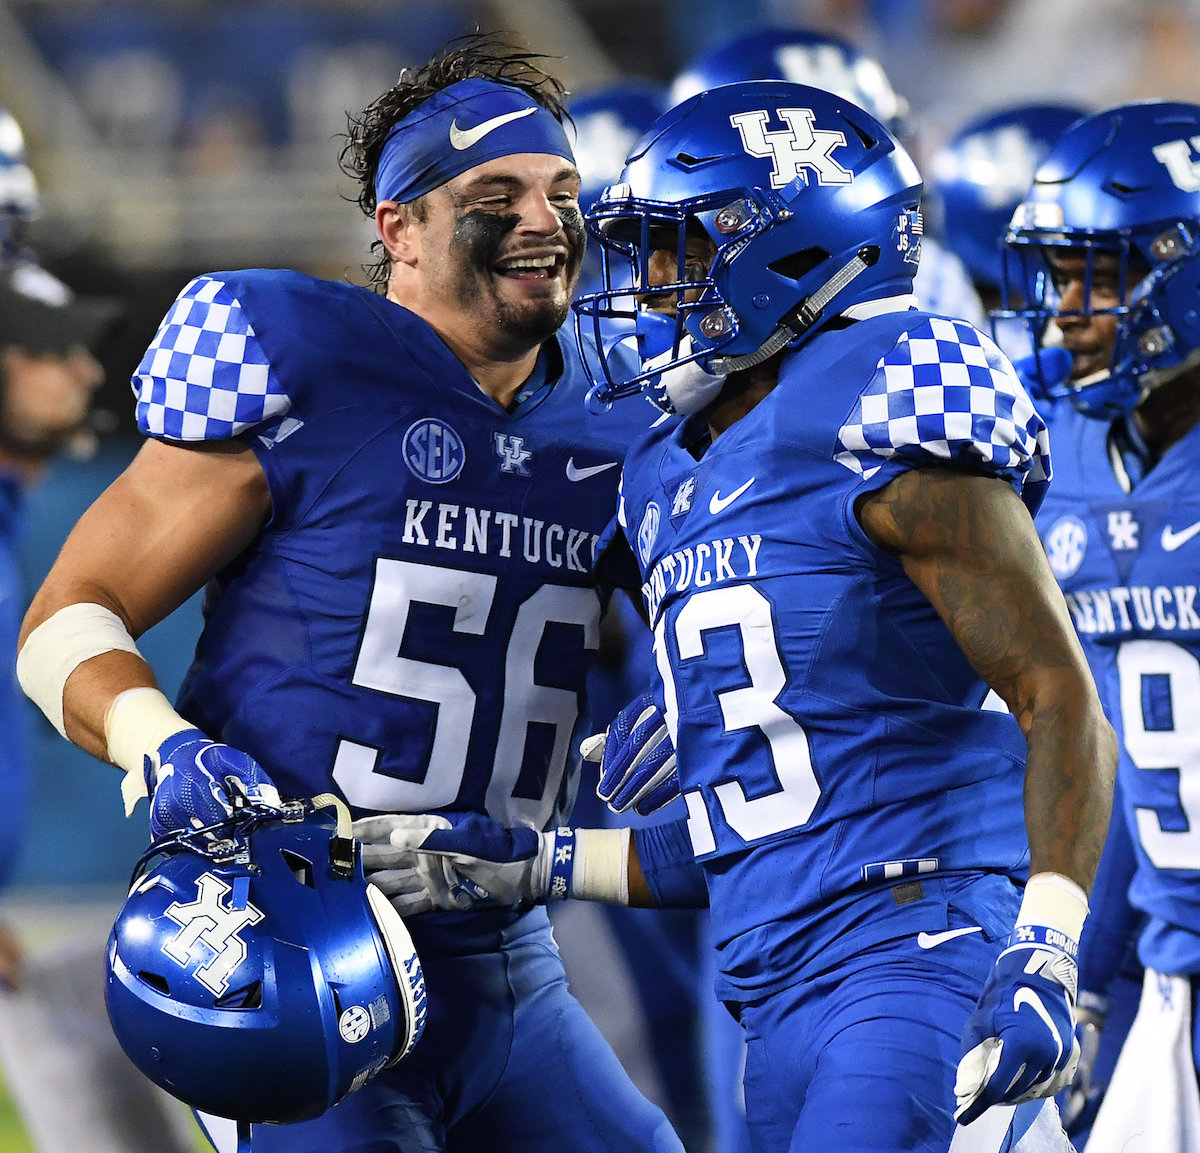 Kash Daniel, left, and his enthusiasm for football has rubbed off on his teammates, including the team's offense. (Kentucky Today/Keith Taylor)